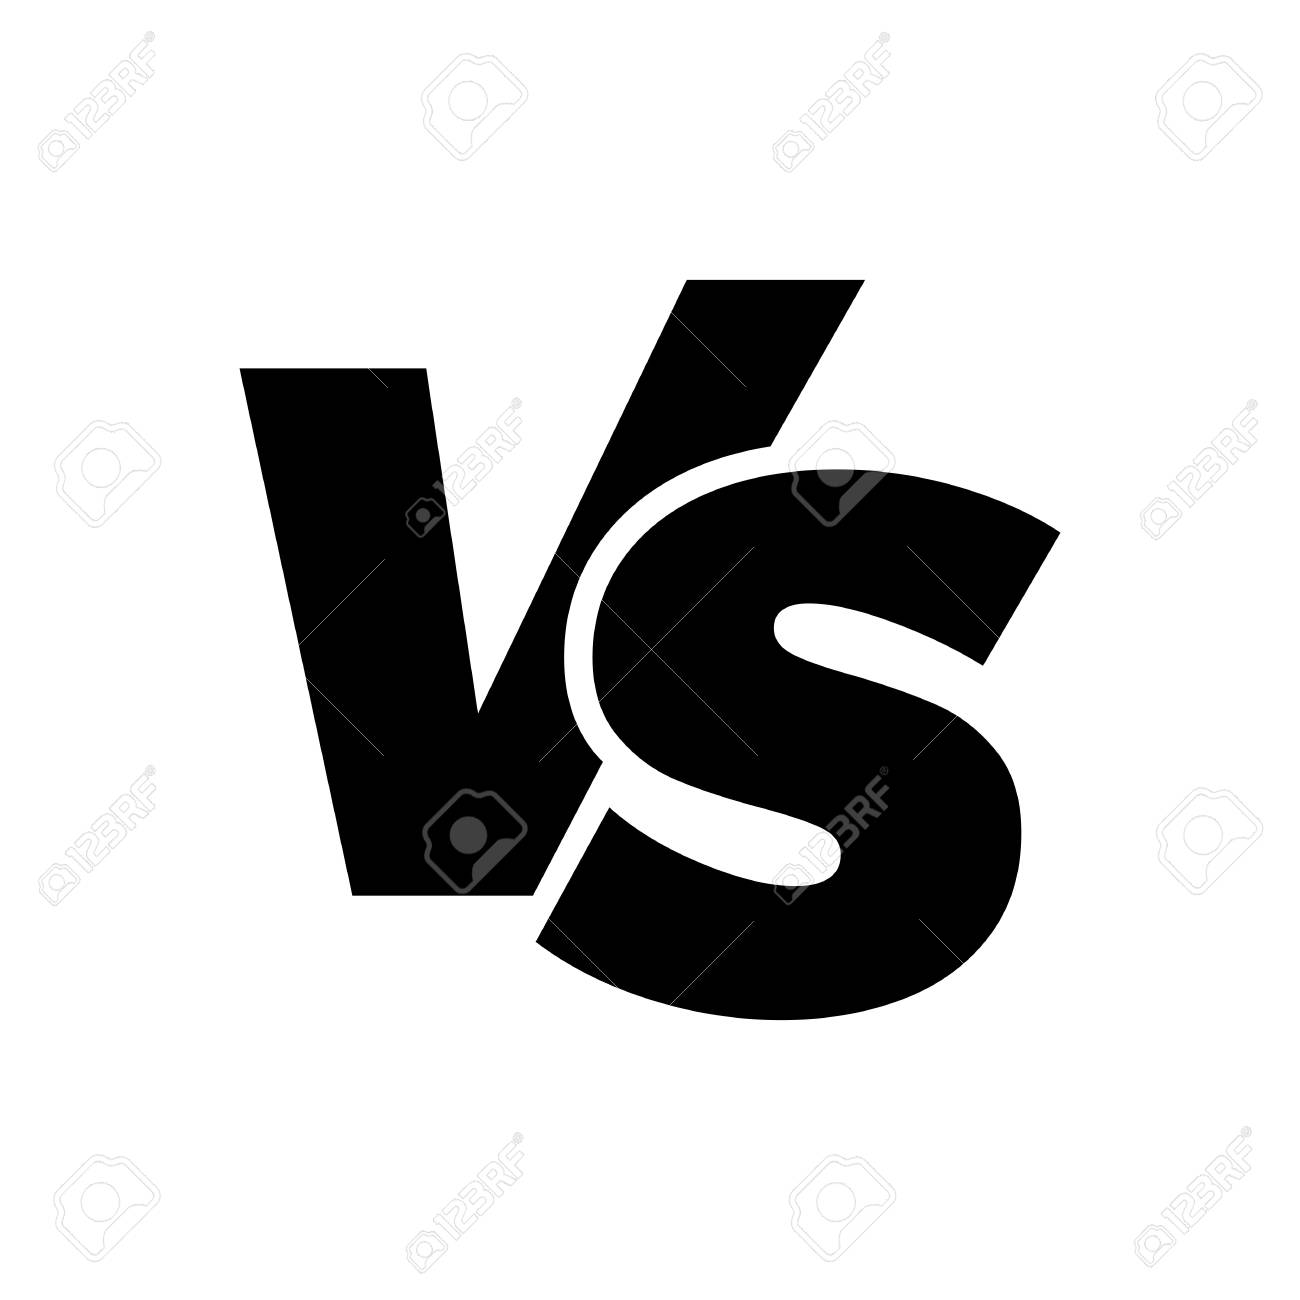 VS versus letters vector icon isolated on white background. VS versus symbol for confrontation or opposition design concept - 97585764